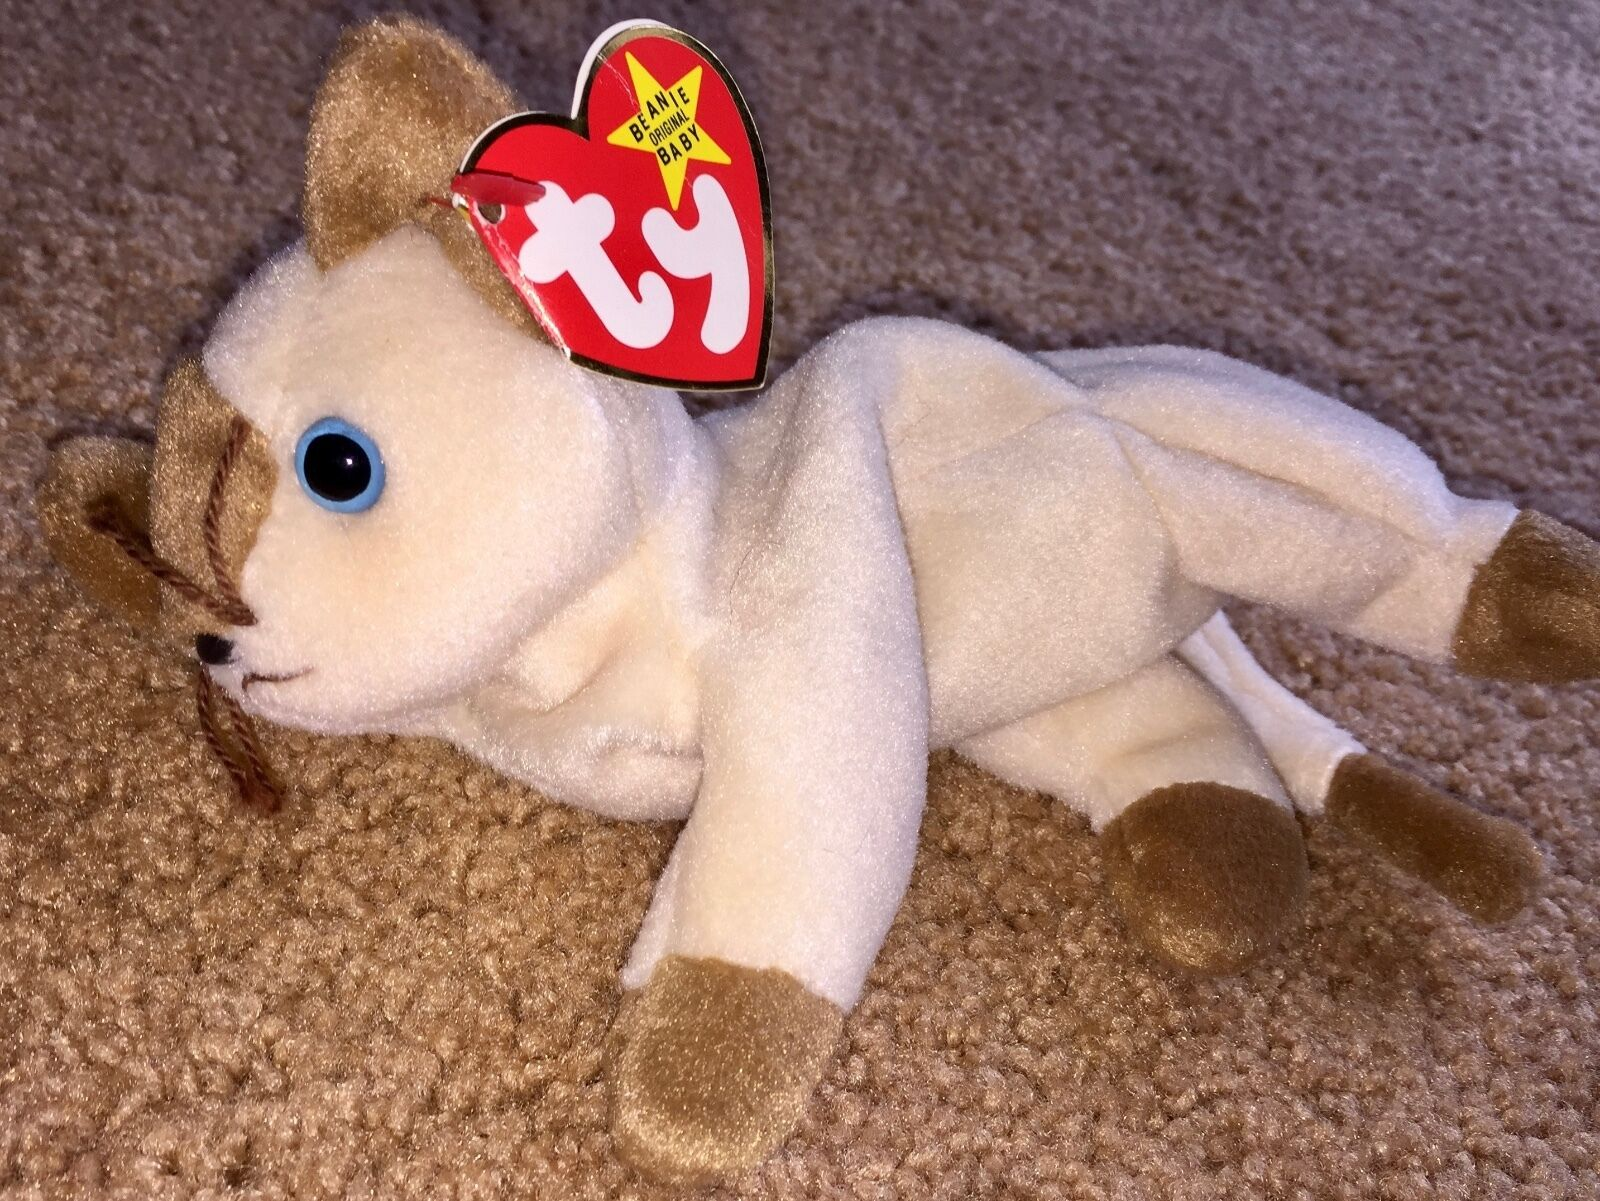 Ty beanie babies Snip Cat Retired 1996 1996 1996 Stuffed Plush Animal Pet b4ec7d